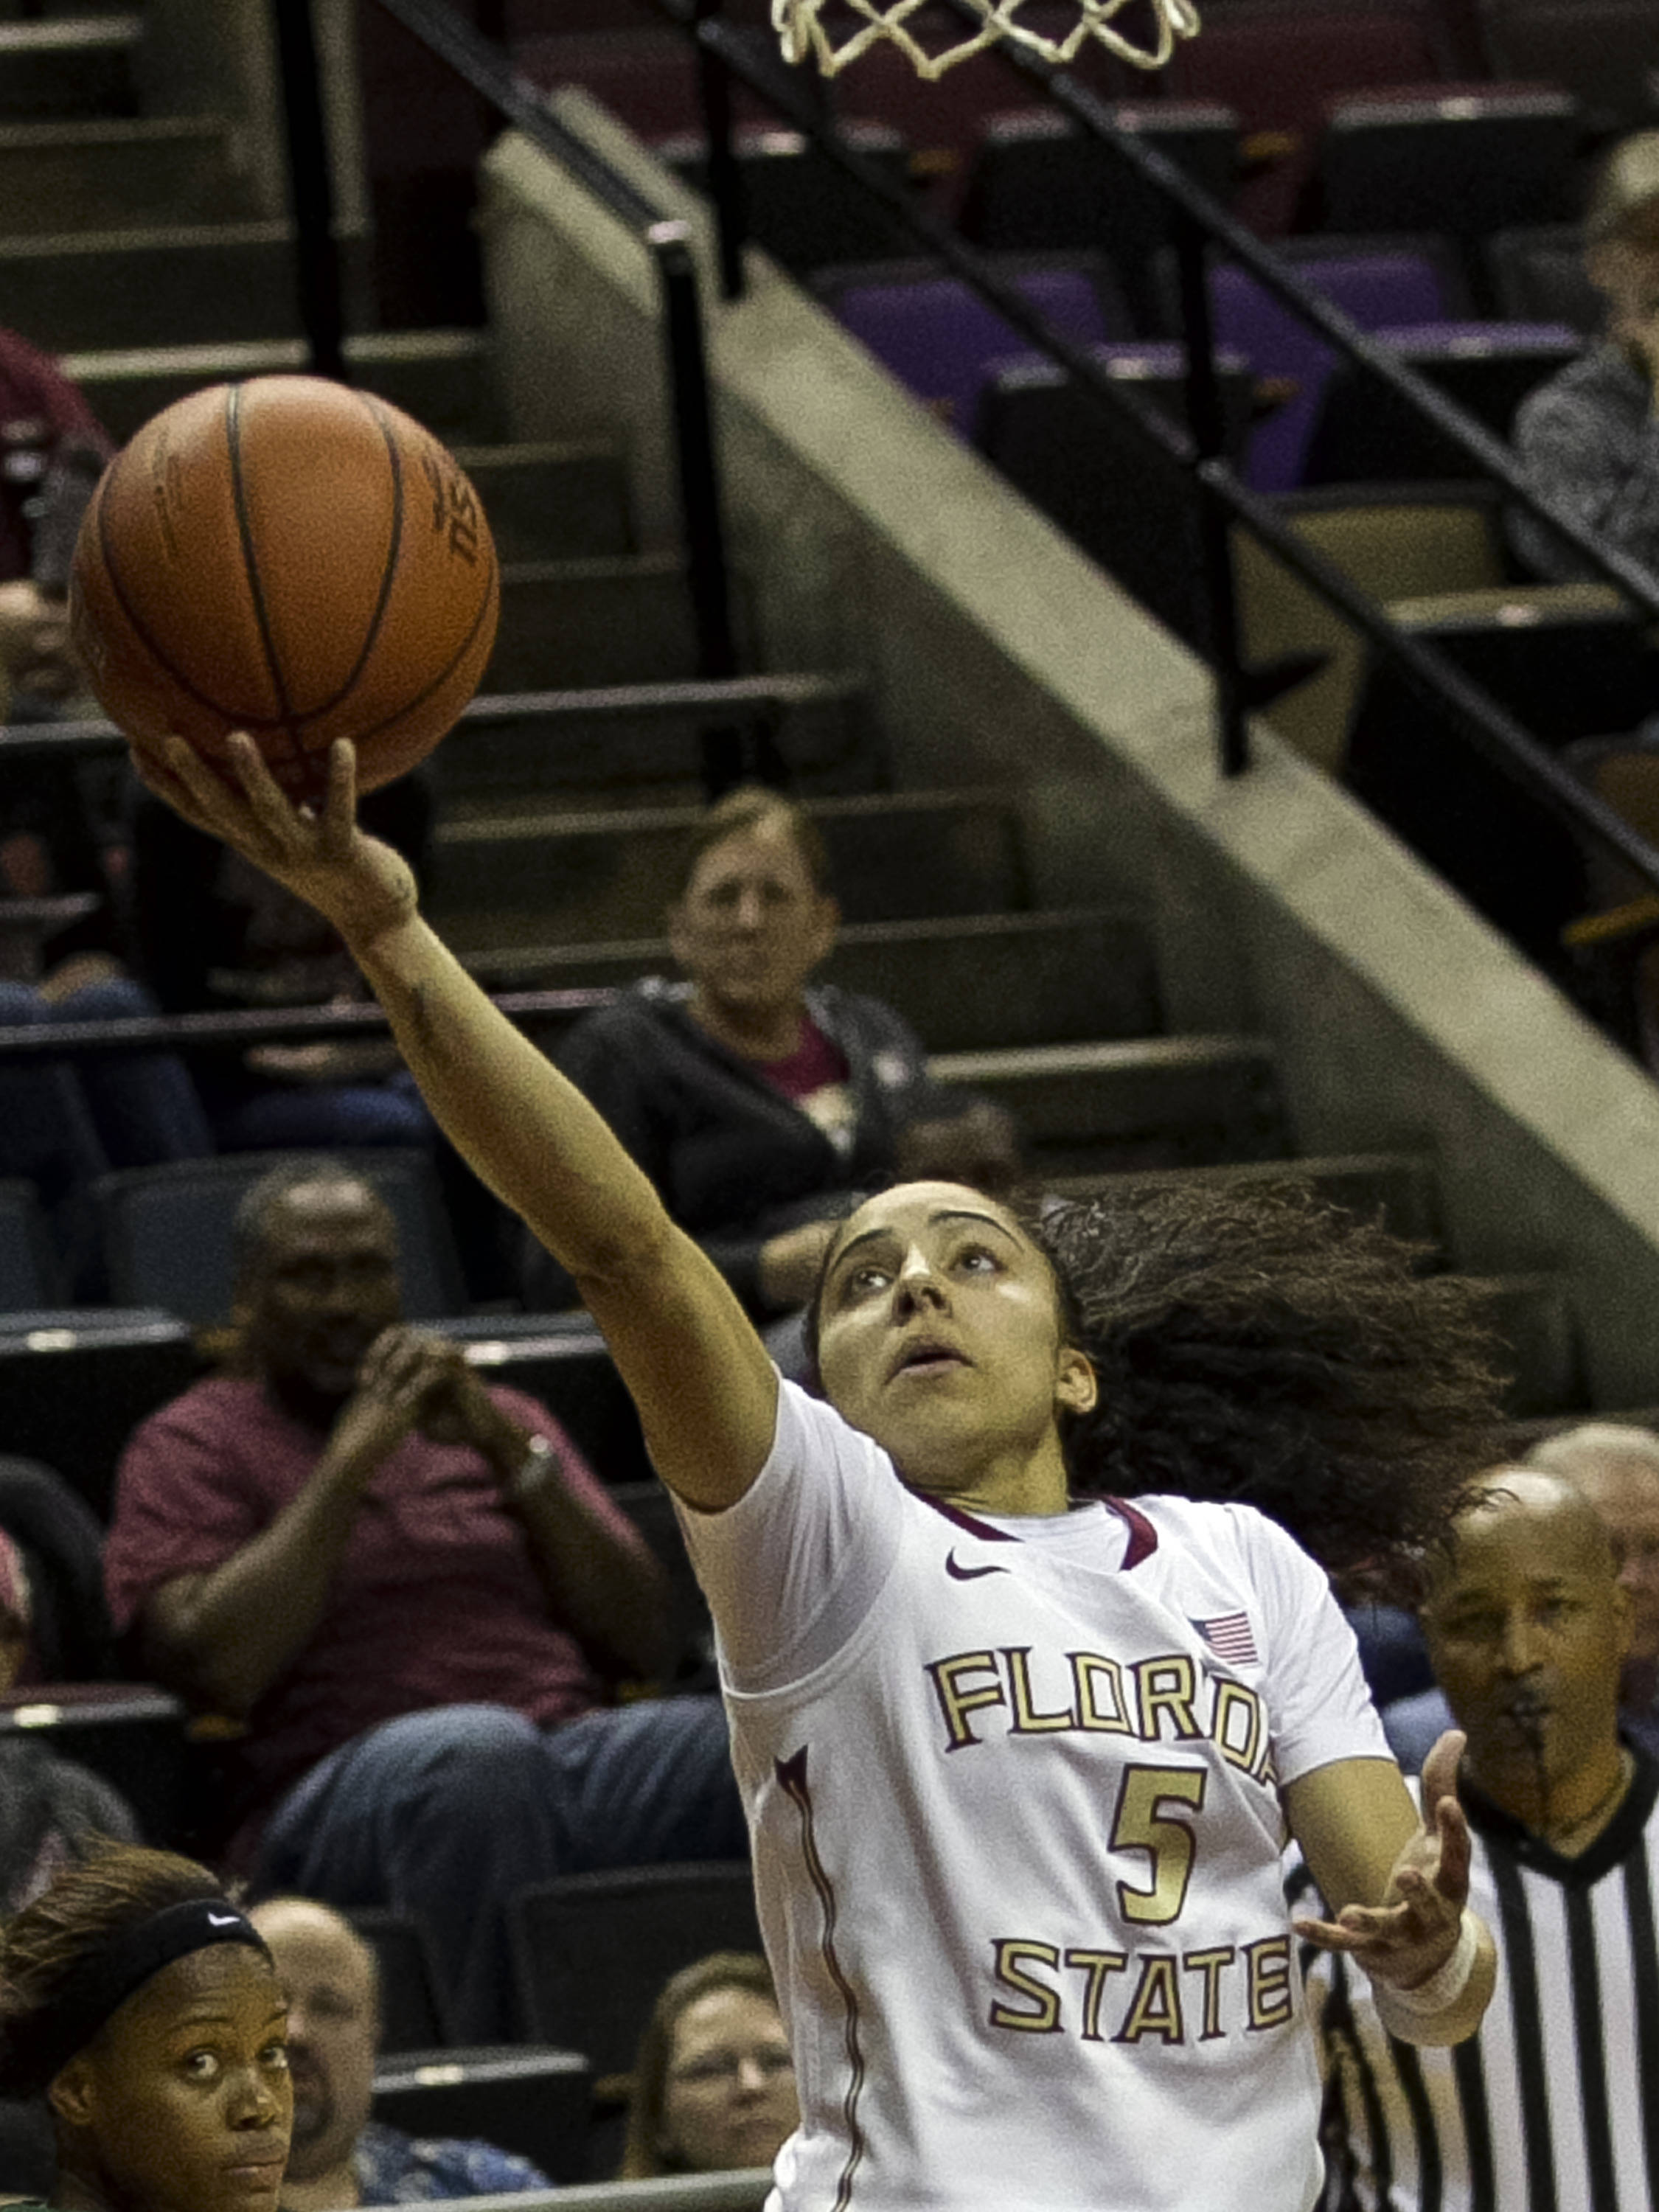 Cheetah Delgado (5) stretches out for her lay-up, FSU vs Miami, 2-16-14, (Photo's by Steve Musco)